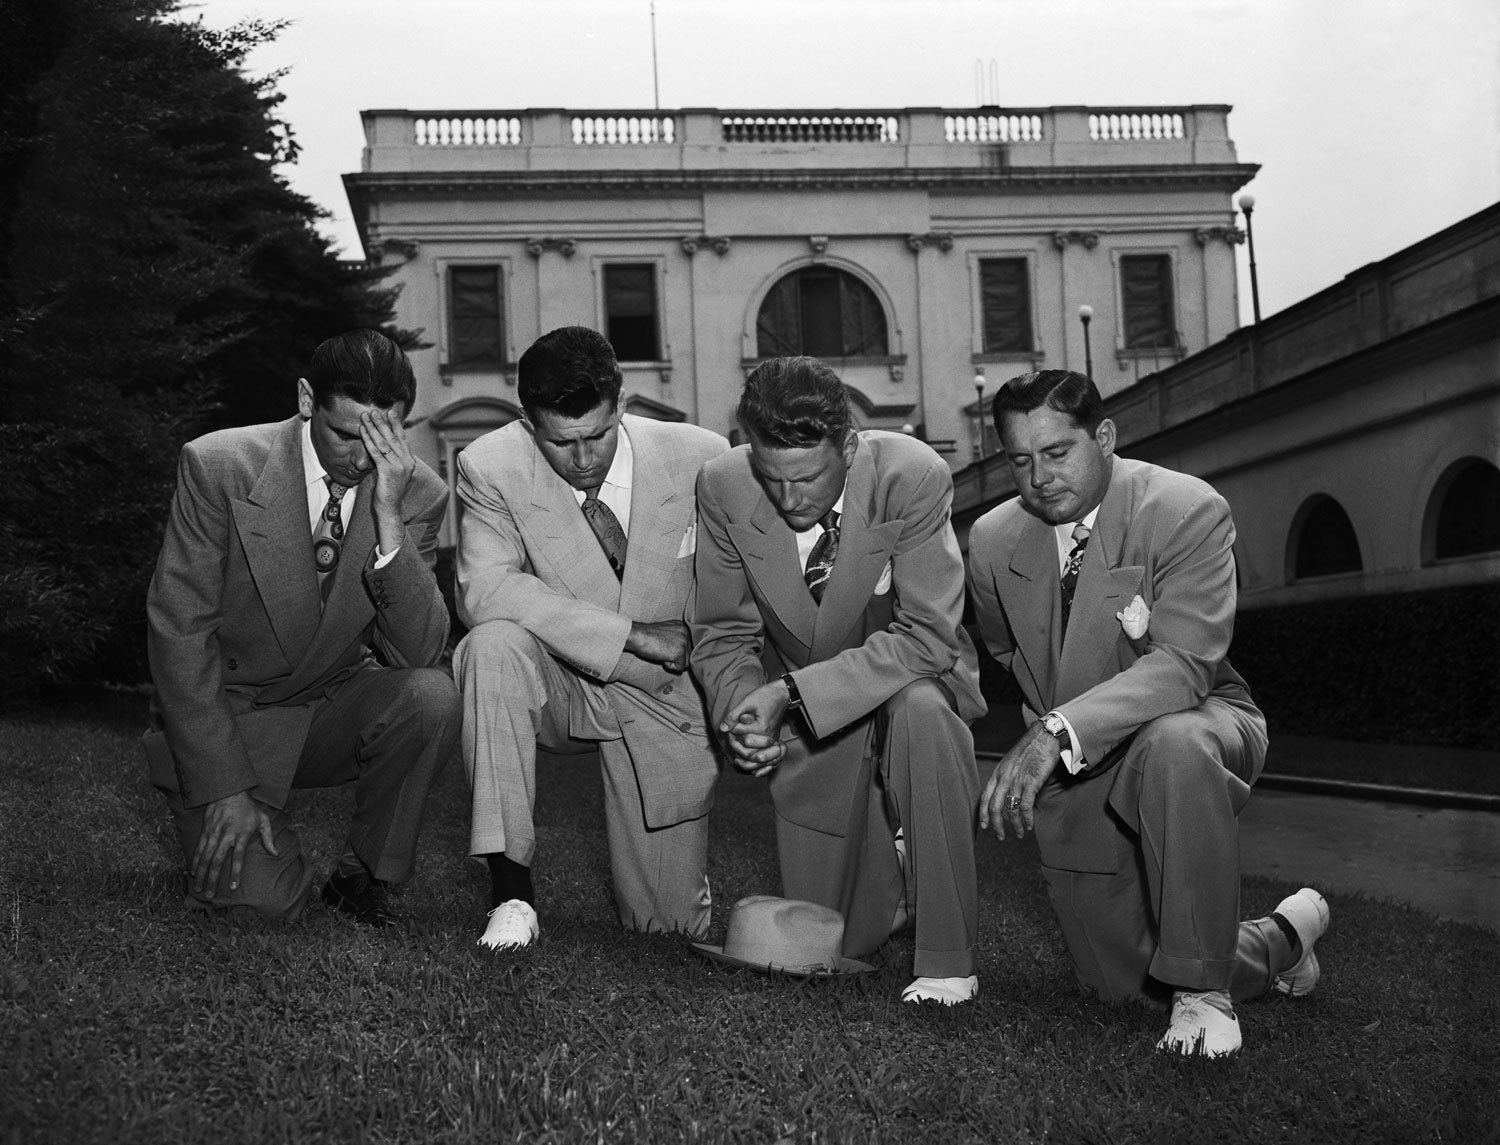 Foray into Washington                                                              Graham, behind hat, kneels in prayer with fellow evangelists, from left to right, Jerry Beavan, Cliff Barrows and Grady Wilson after meeting with President Harry Truman to discuss the Korean War, July 14, 1950.